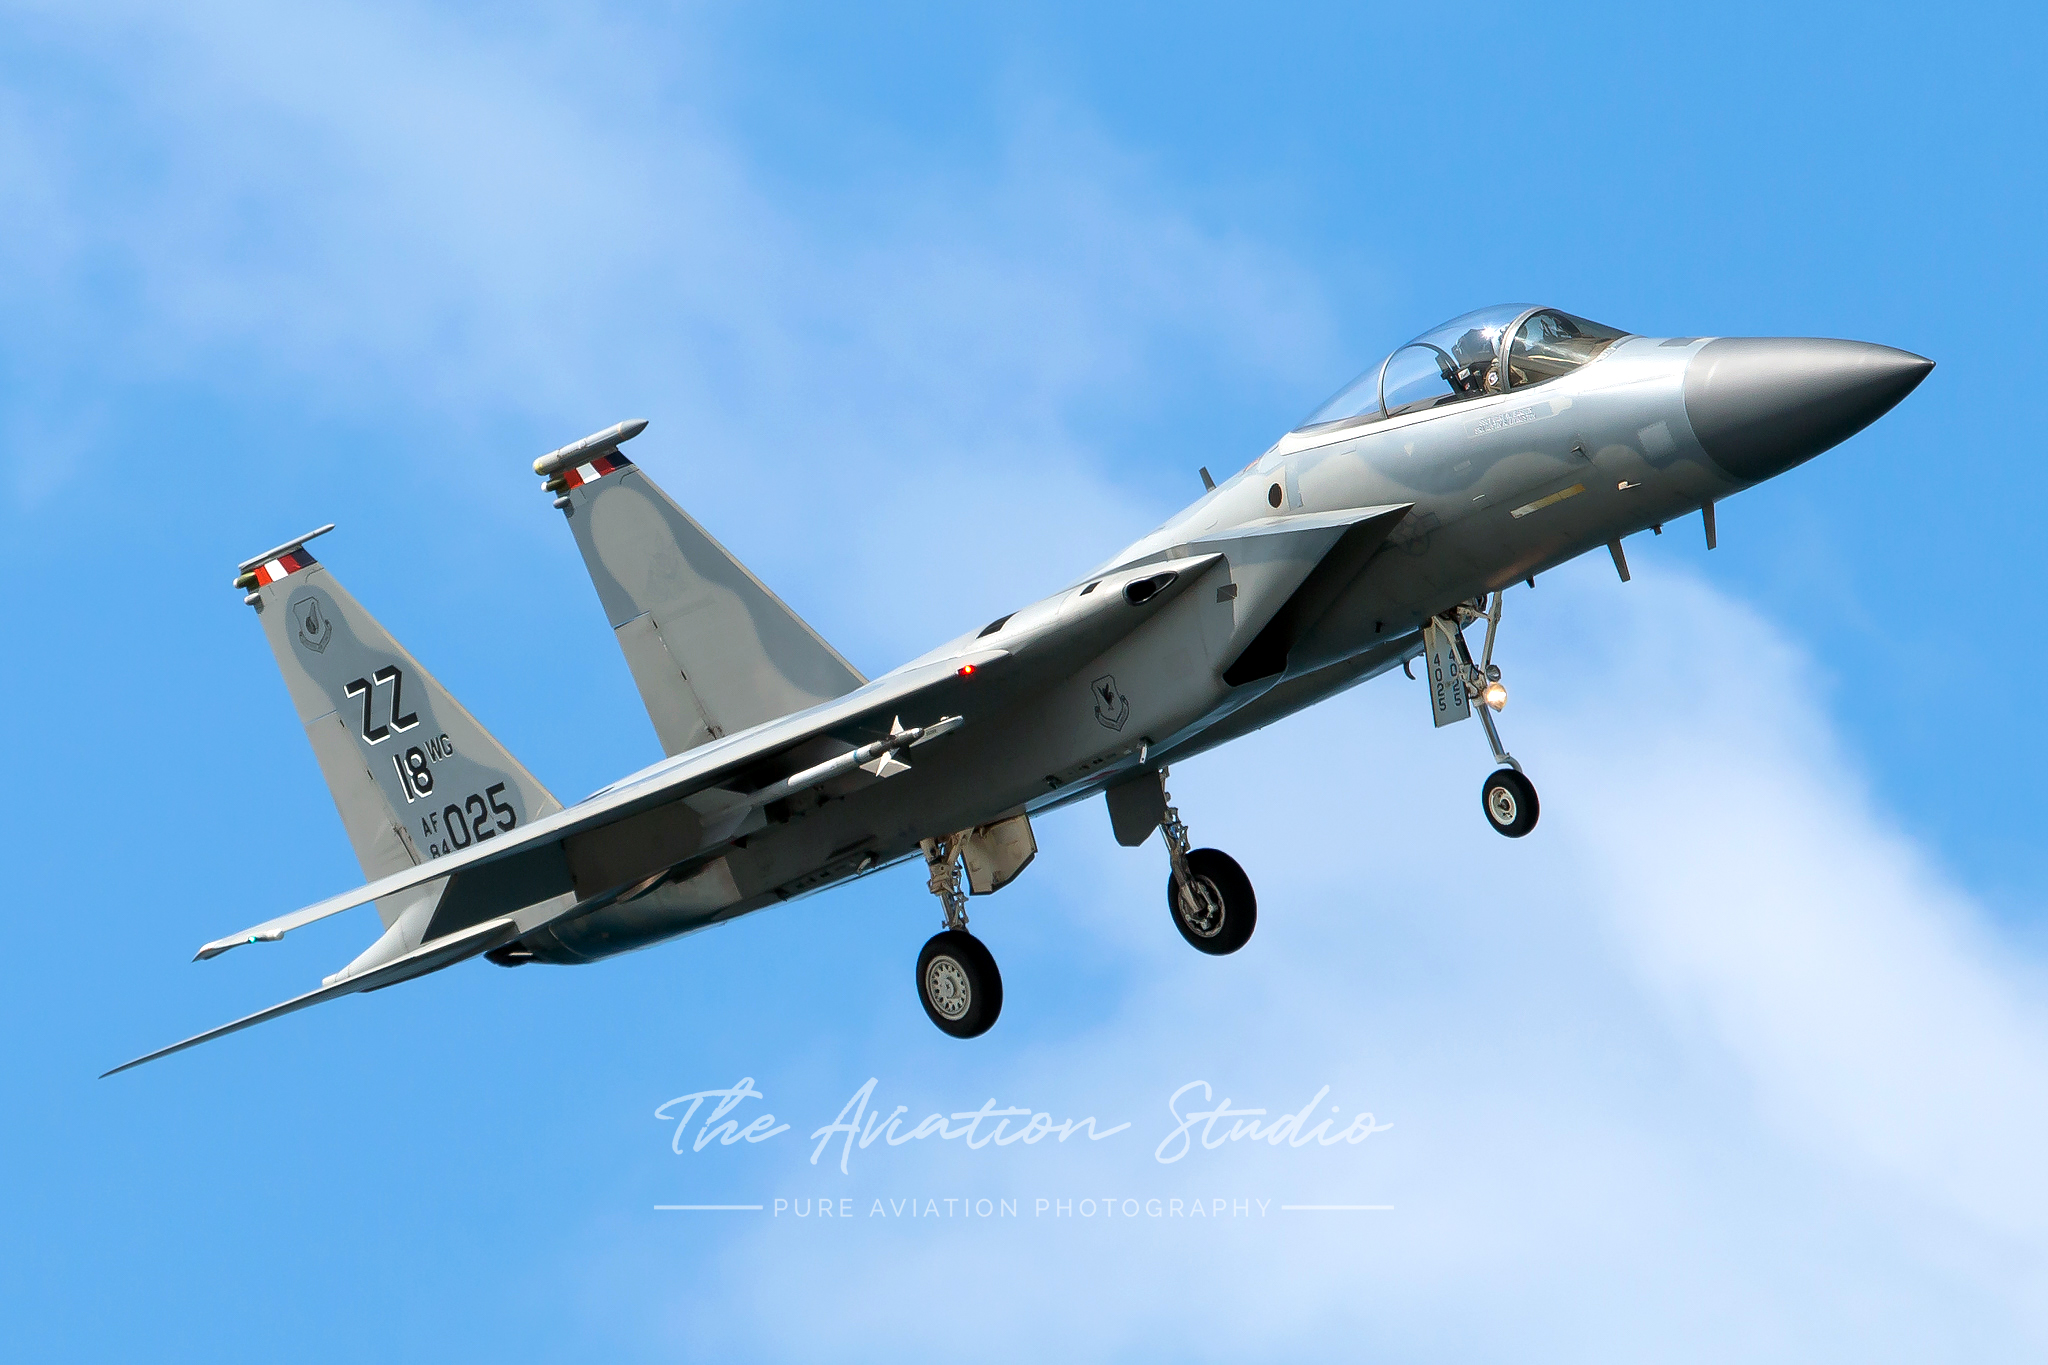 McDonnell Douglas F-15C Eagle 84-0025 on short final to Kadena (Image: Brock Little)